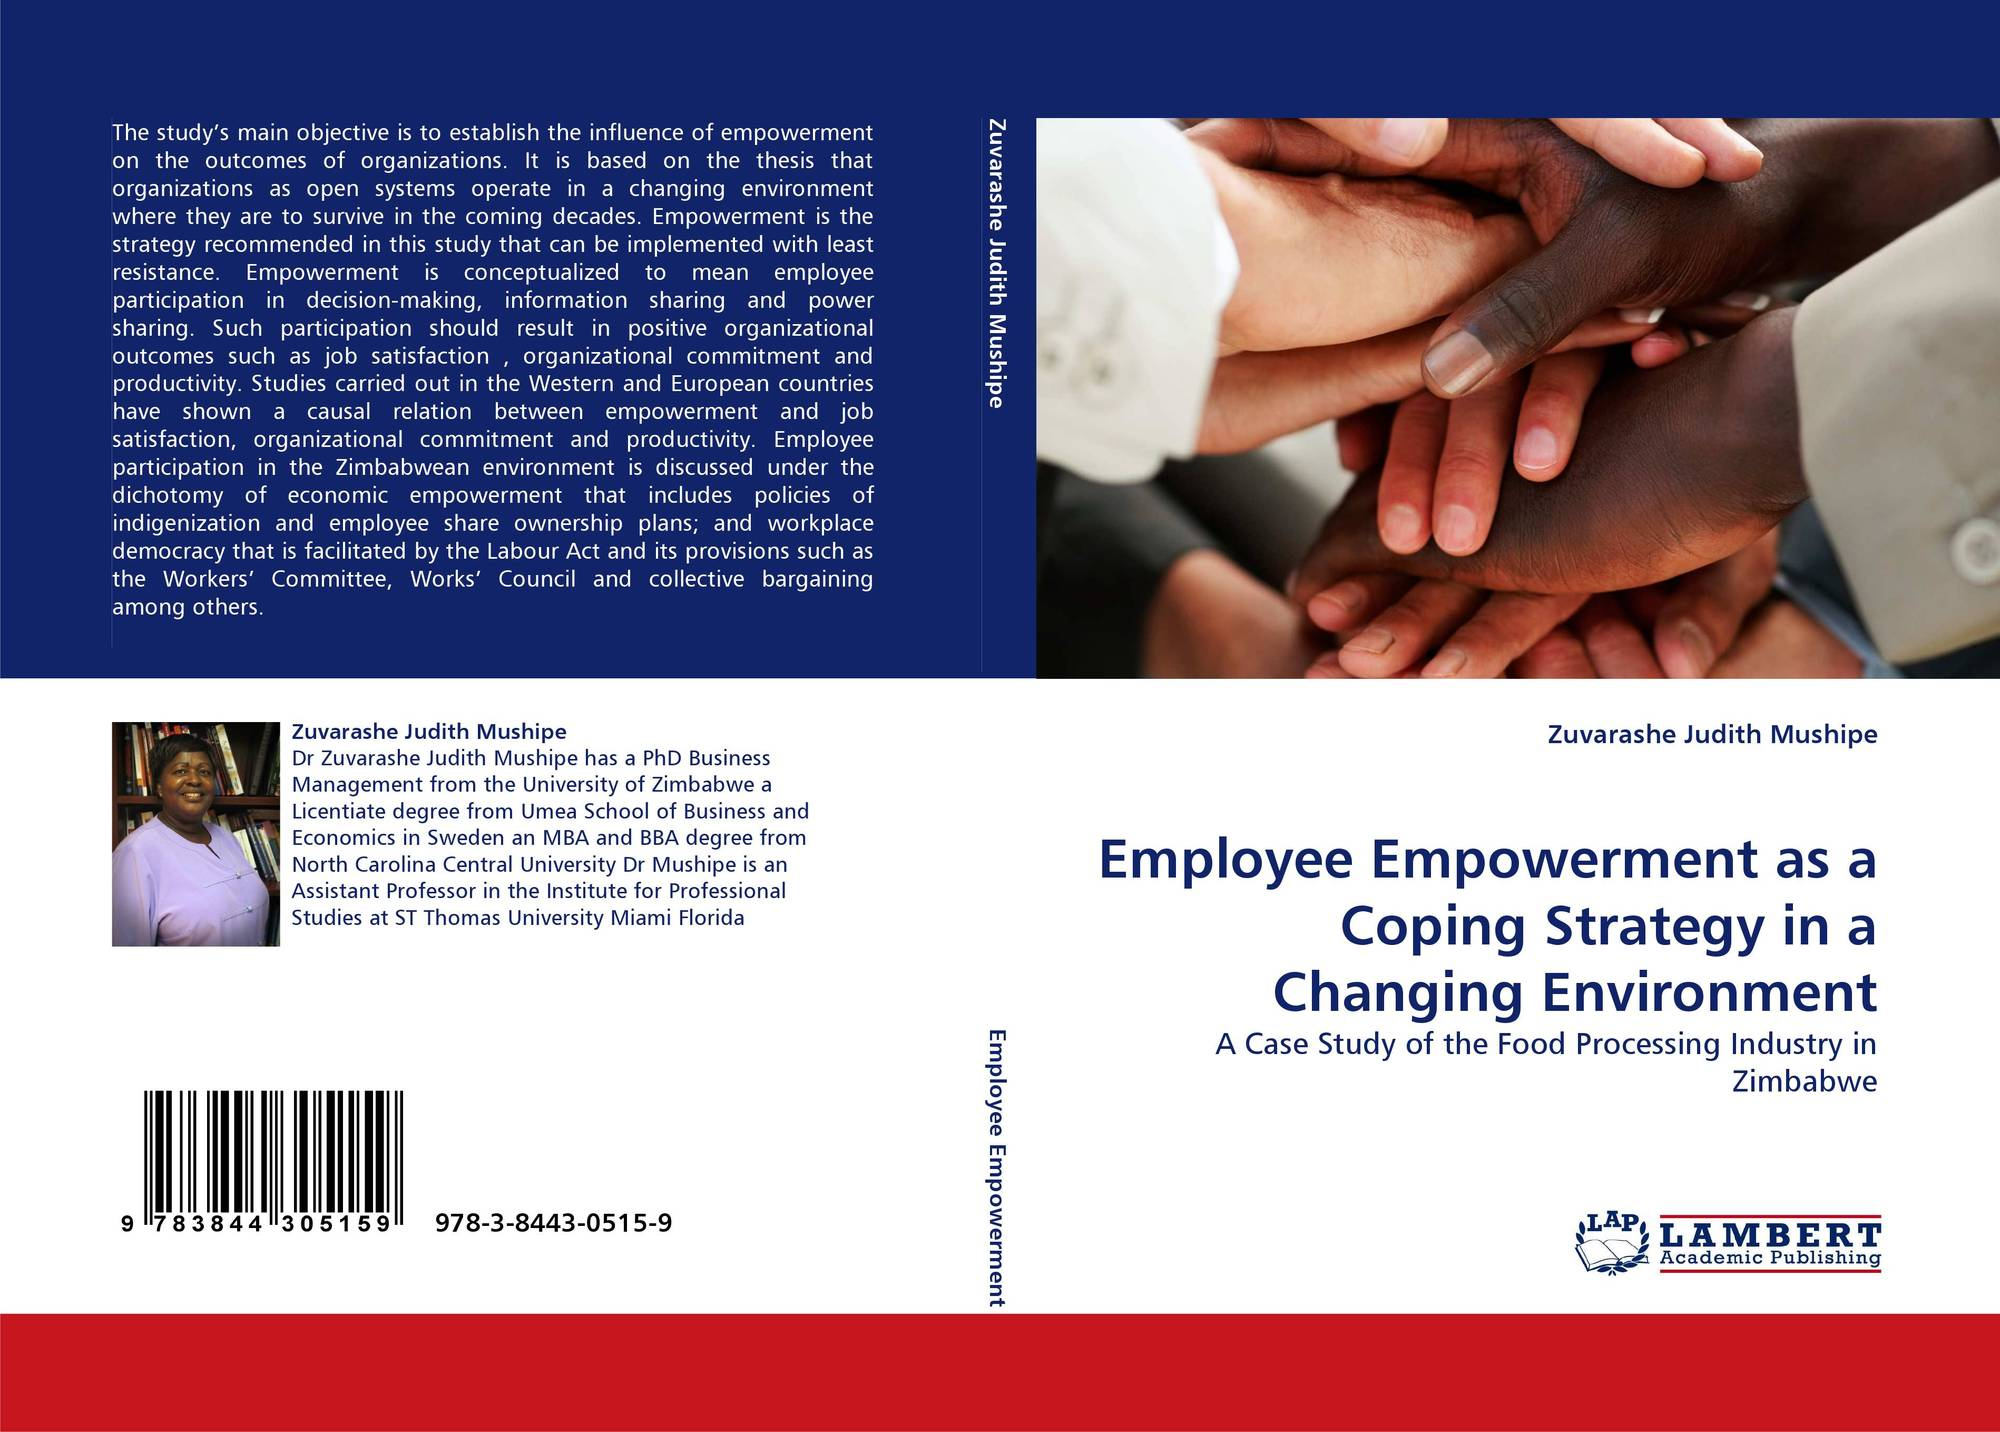 phd thesis on employee empowerment